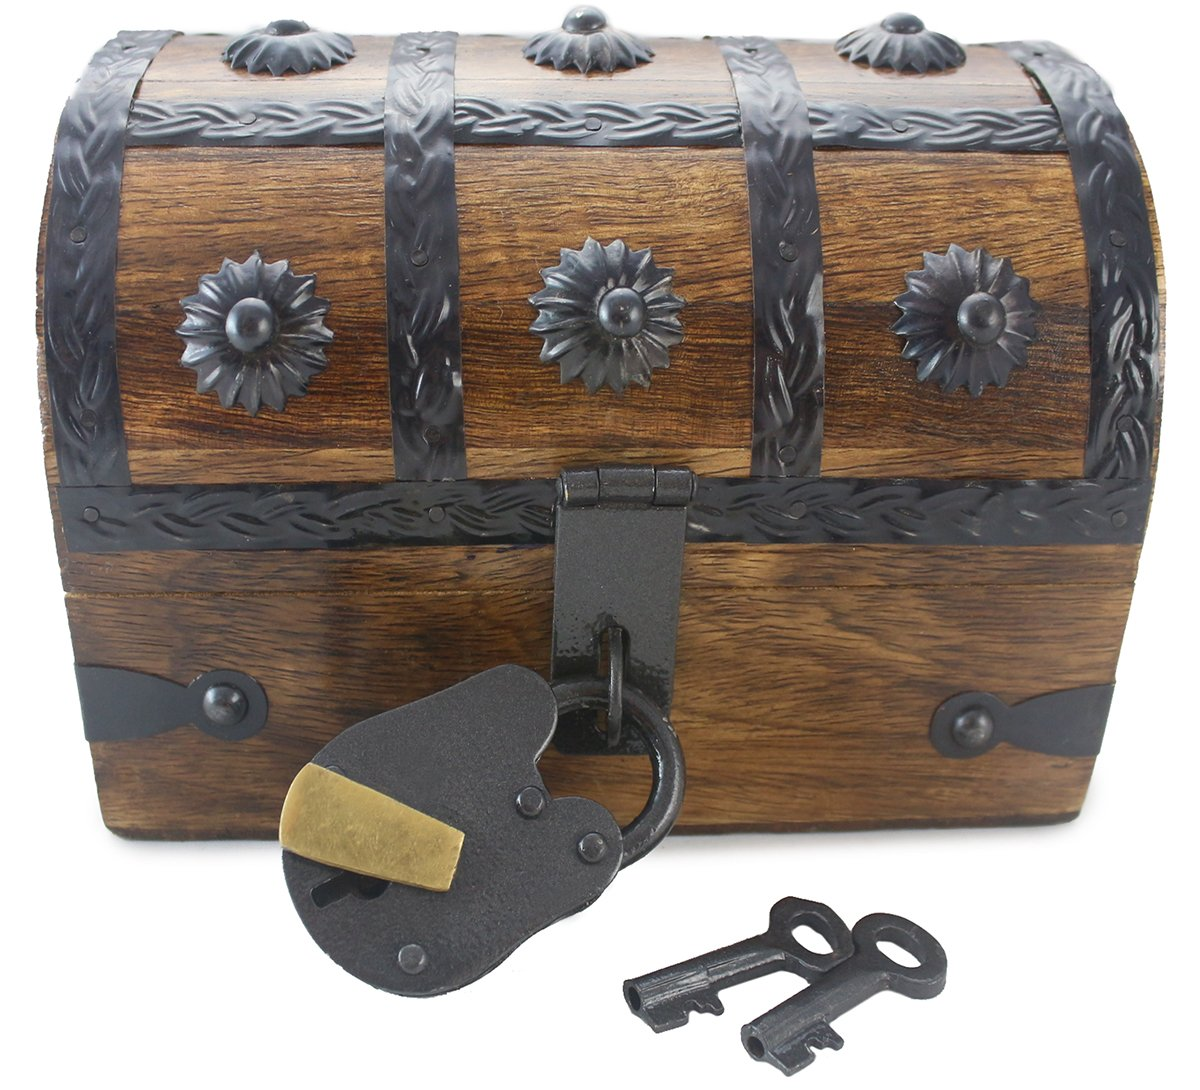 "Well Pack Box Pirate Treasure Chest and Lock 6.5"" x 4.5"" x 4.5"" Plus Skeleton Key Vintage"